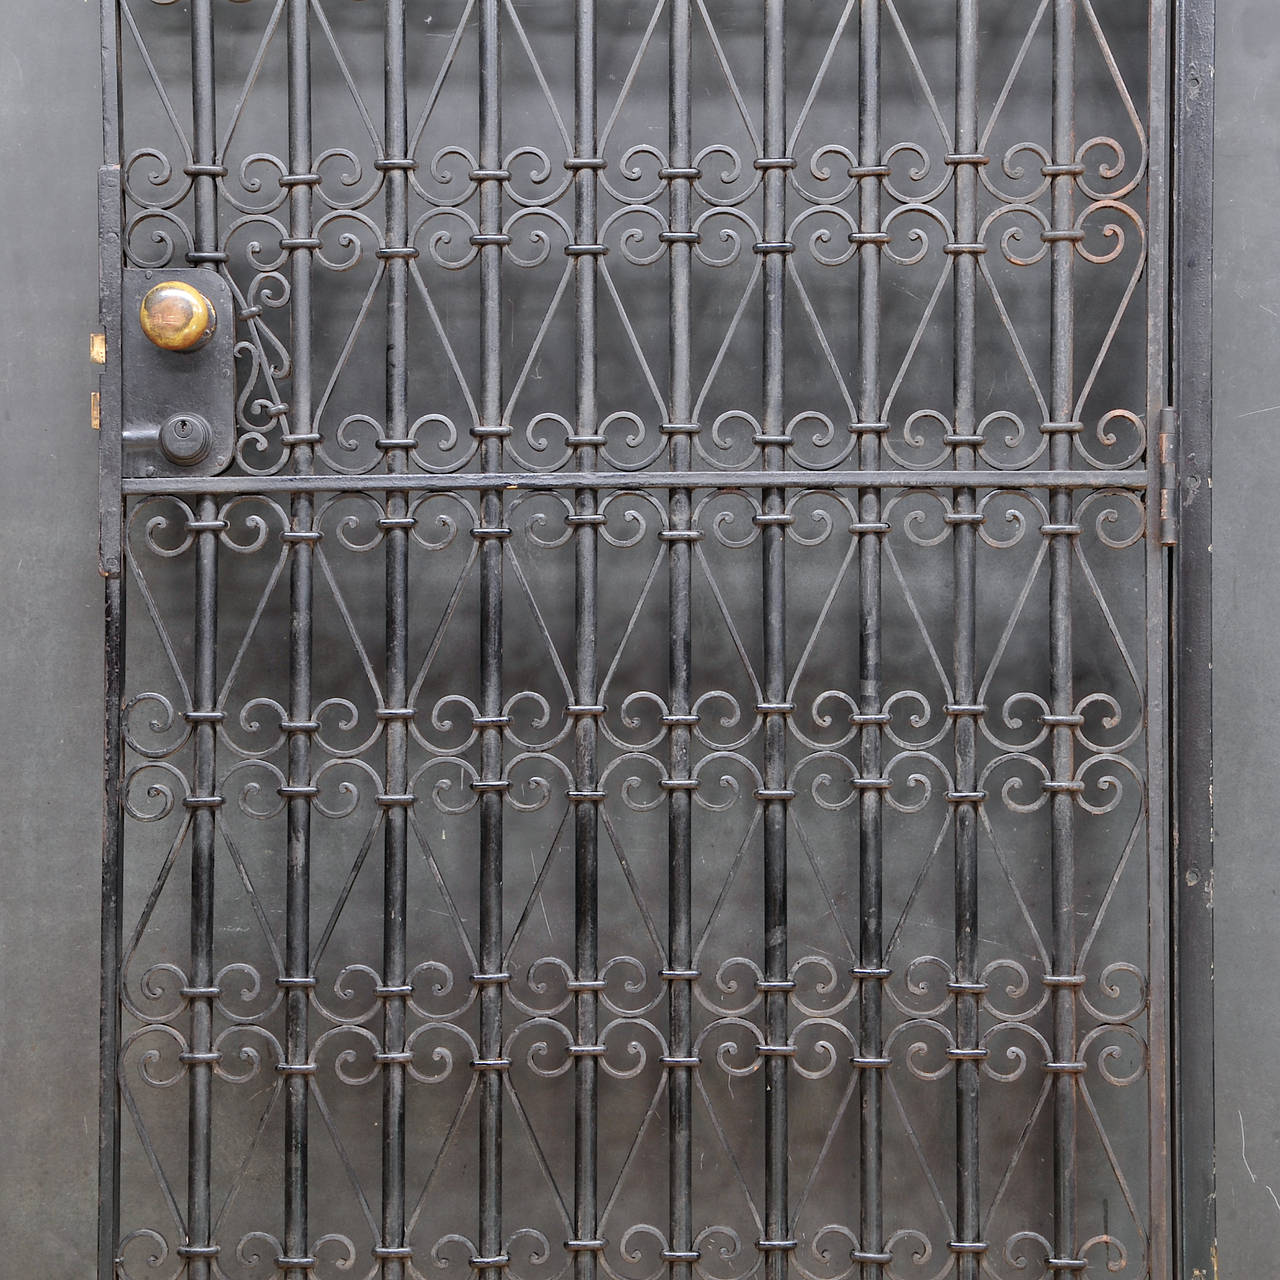 Late Victorian Vintage Industrial Wrought Iron Metal Arts Architectural Garden Gate Door For Sale